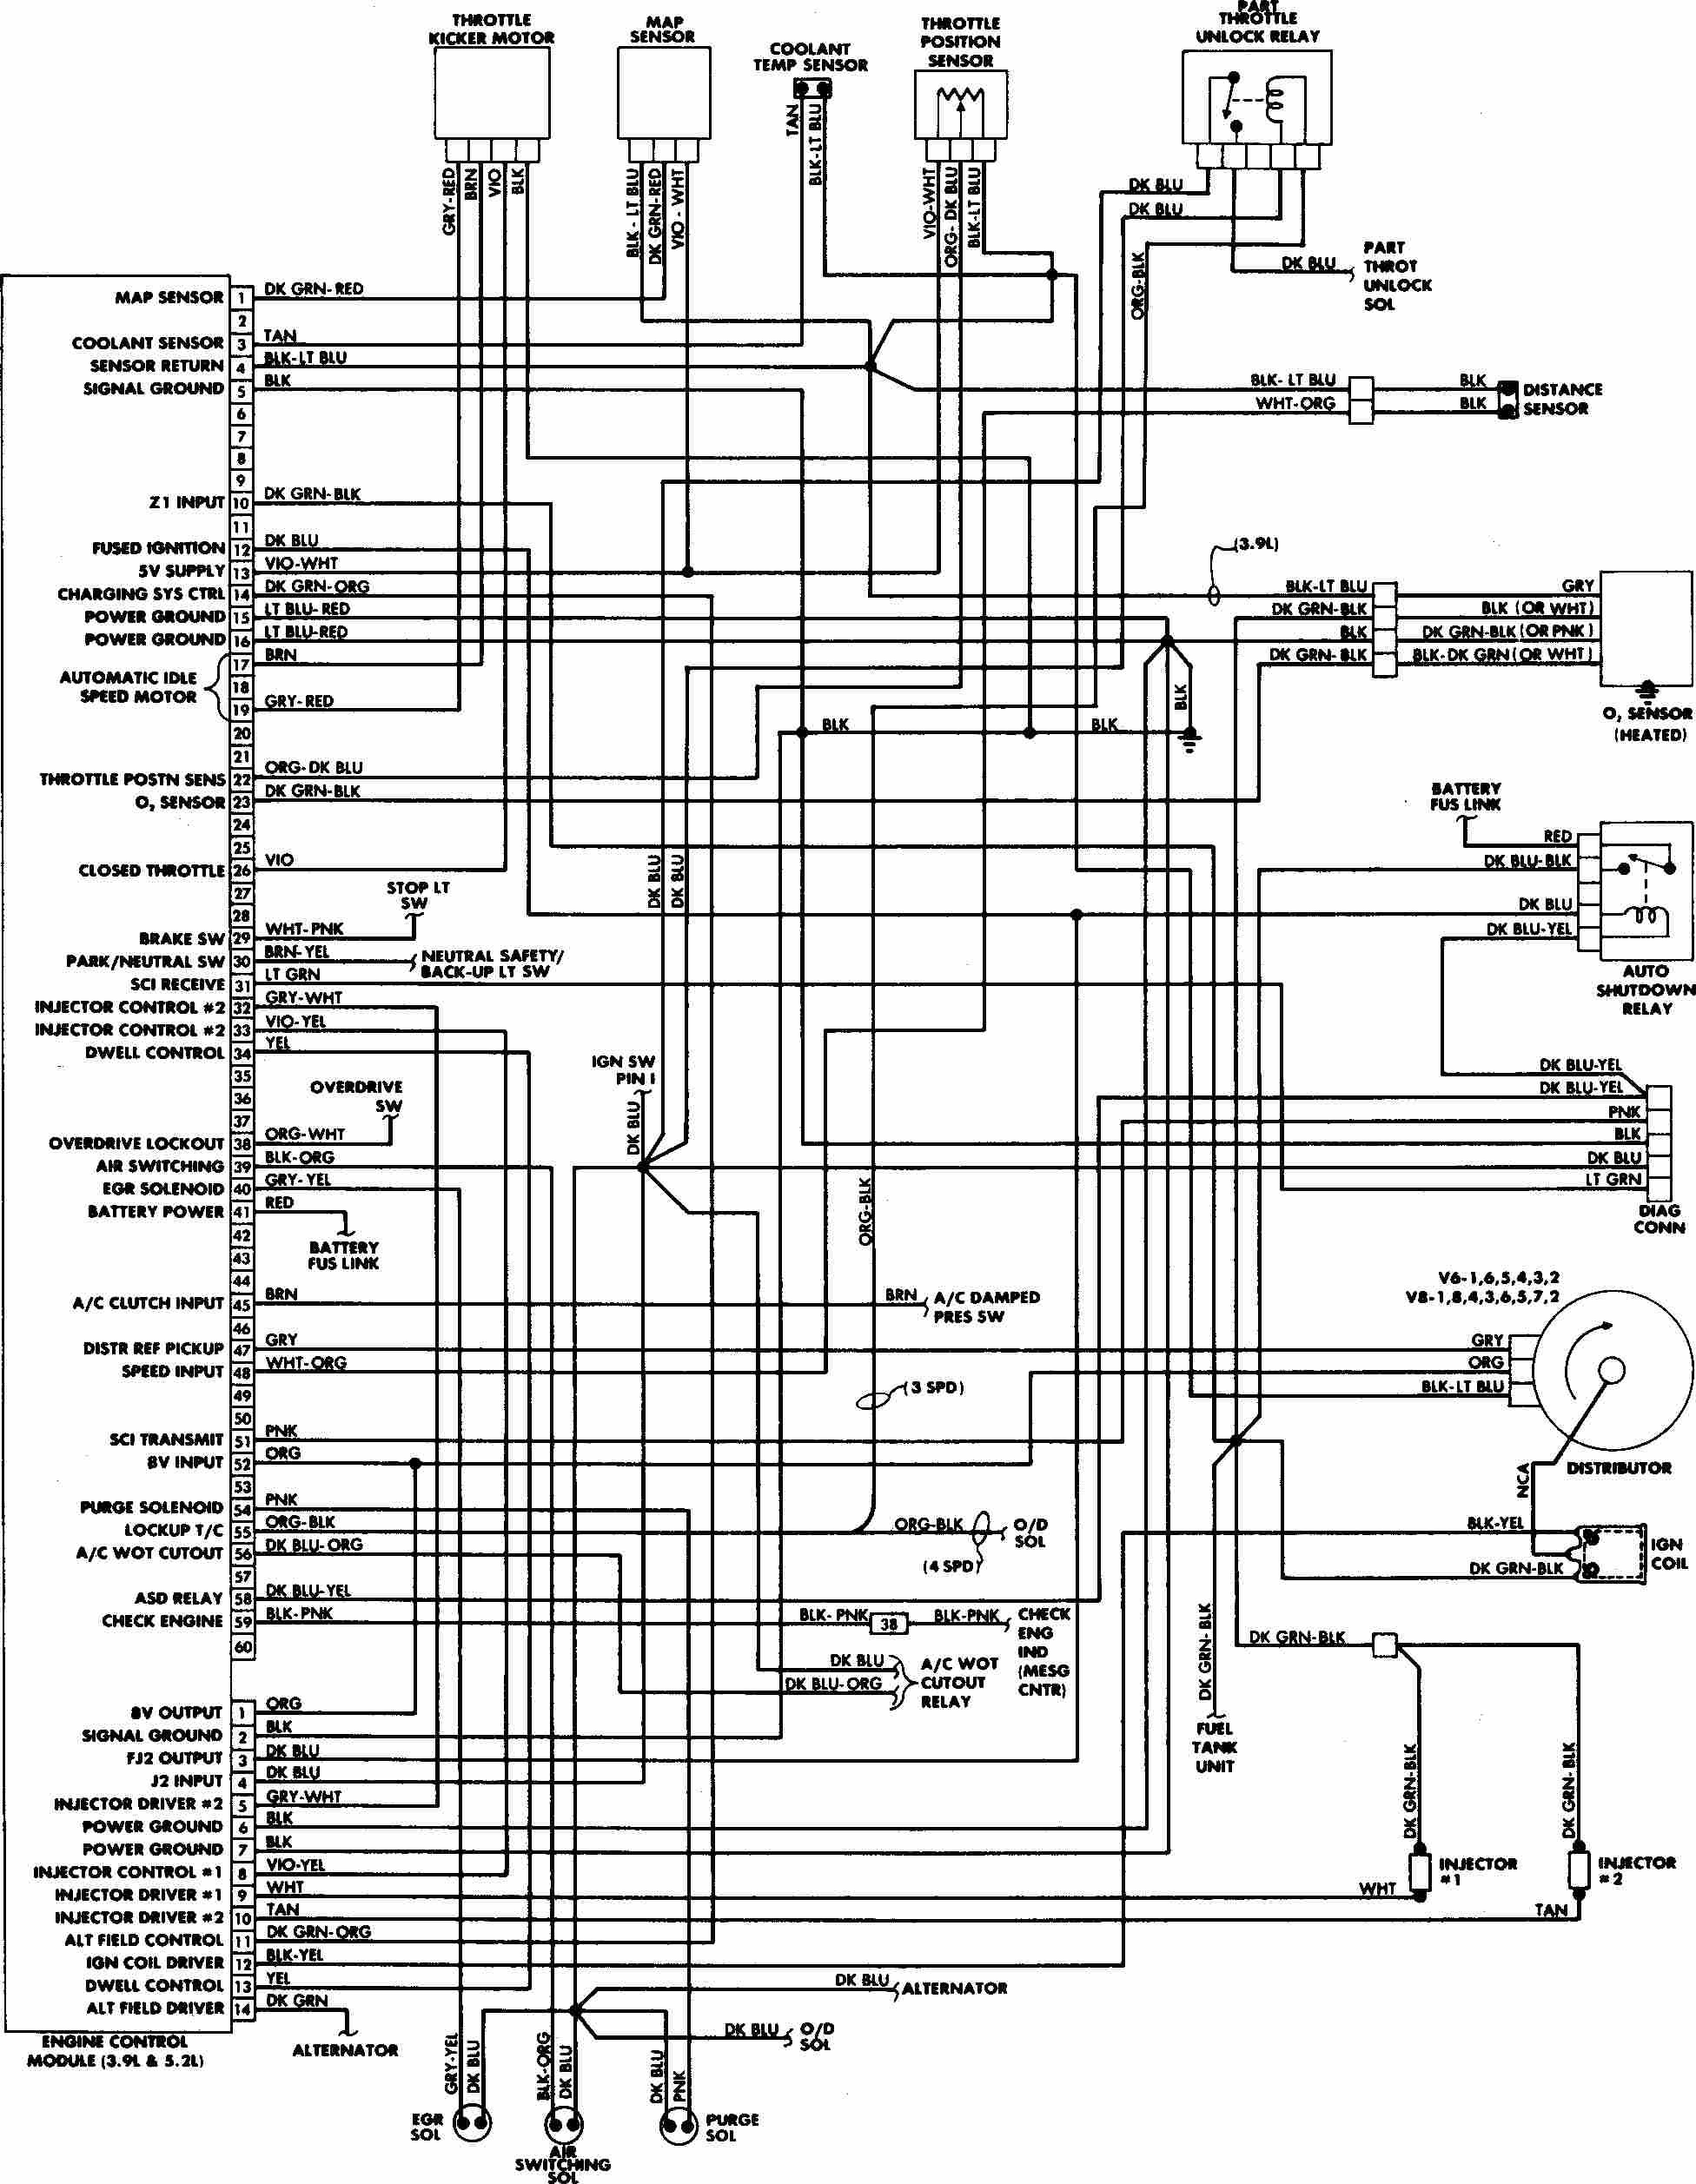 Engine Control Wiring Diagram Of Dodge W100